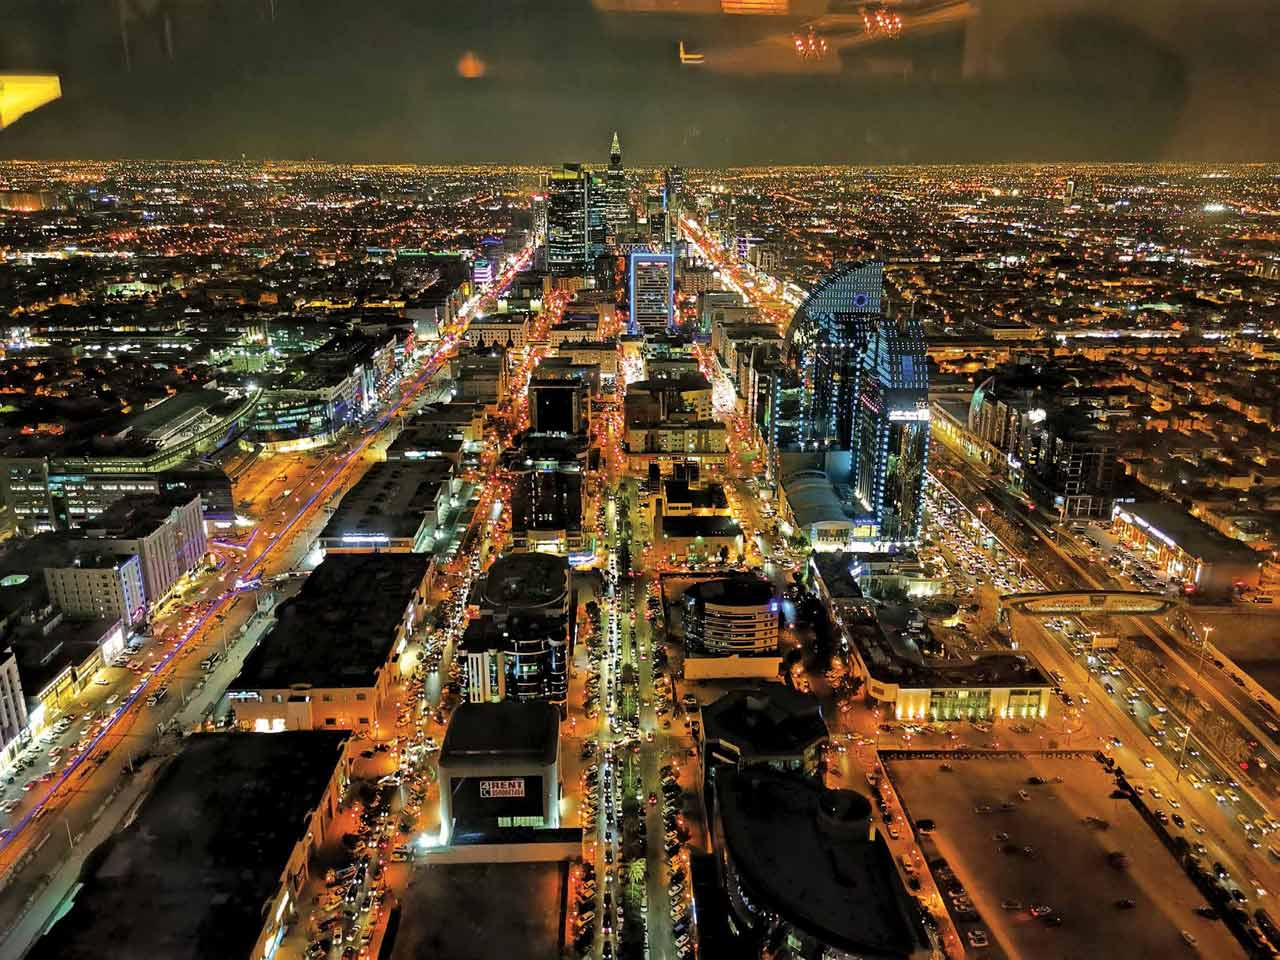 Moncito Regondon Jr. captured this stunning view of Riyadh while there on a business trip last November. Taken from the 77th floor of the Spazio Restaurant. Regondon Jr. lives and works in Ras Tanura.